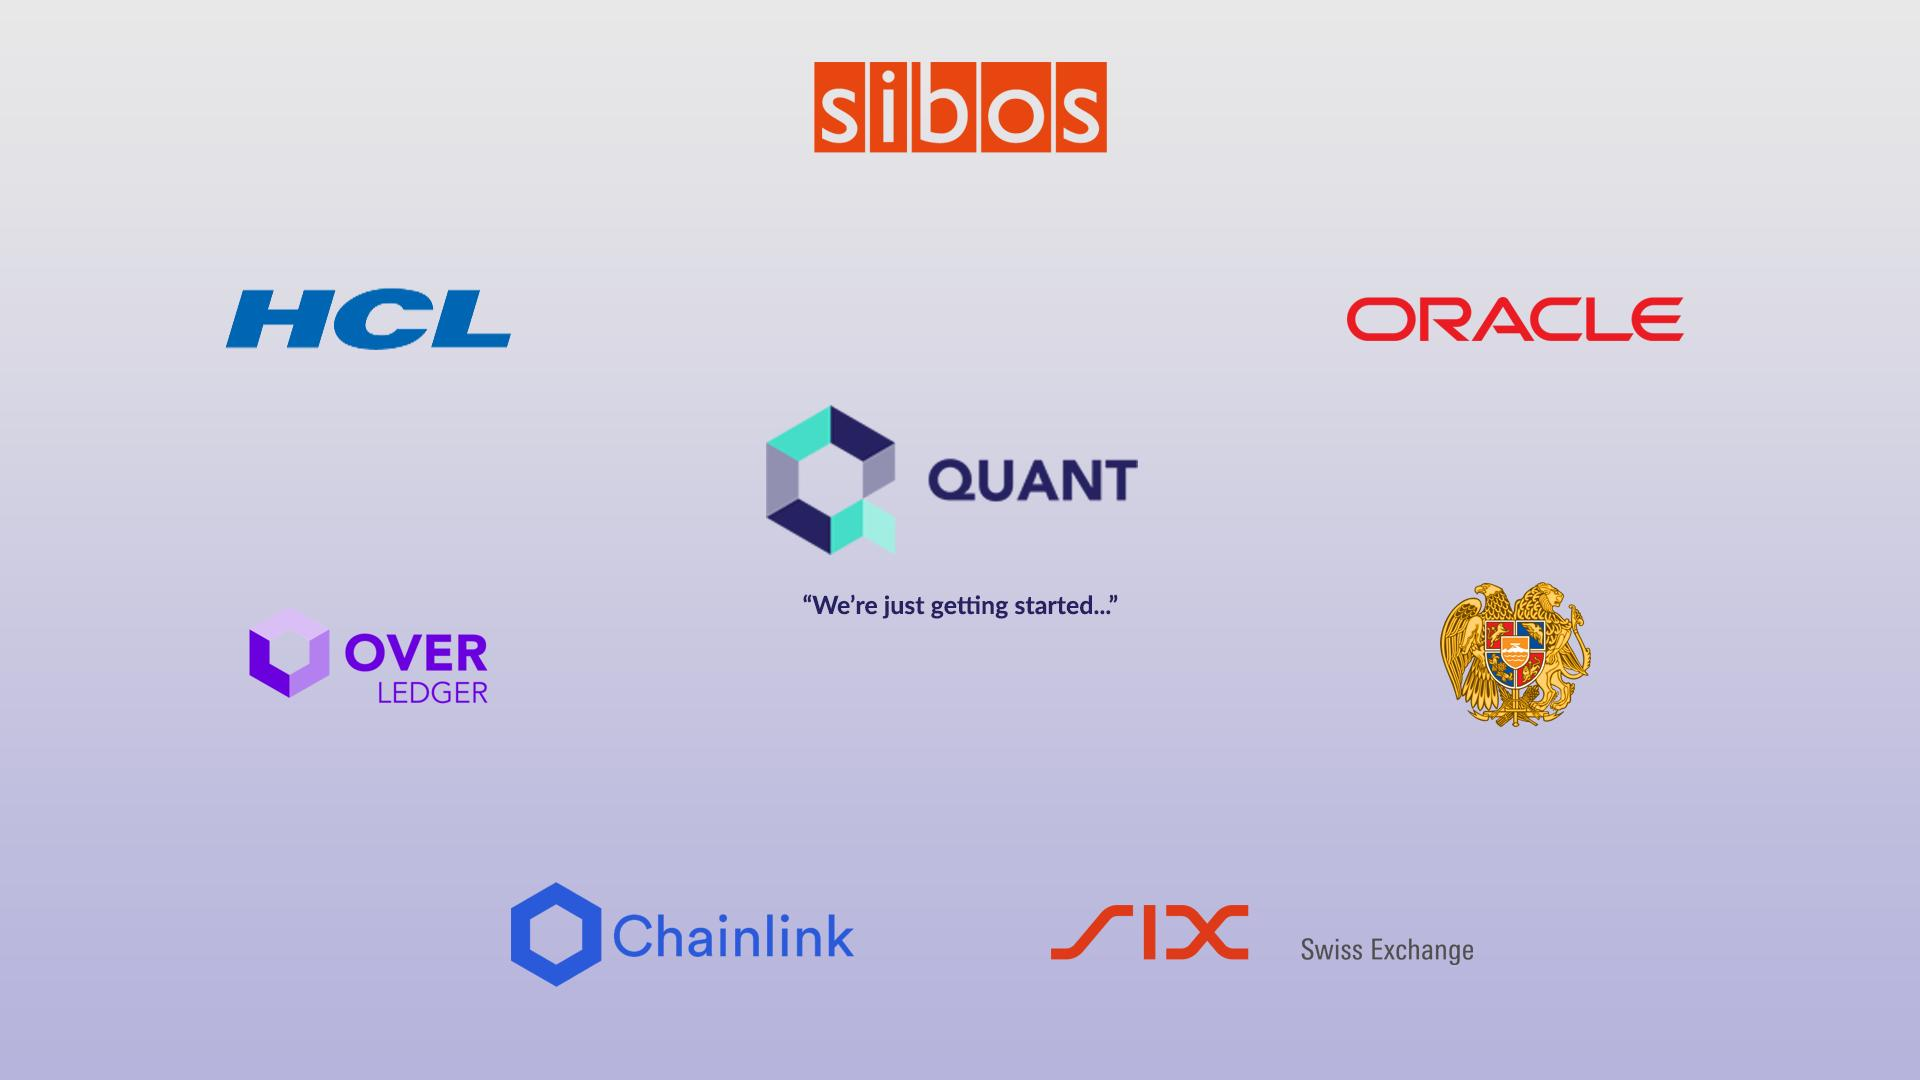 Summary - @gverdian dropped by Telegram  Attending @Sibos 2019  Upgraded to @Oracle Fintech Partner  Working with Government of Armenia in Healthcare.. WHISE?😏  @hcltech exploring #overledger tech  Open to working with @chainlink  Met with @sixgroup  🚀  #blockchain #DLT #crypto https://t.co/OlEc0TqPYP